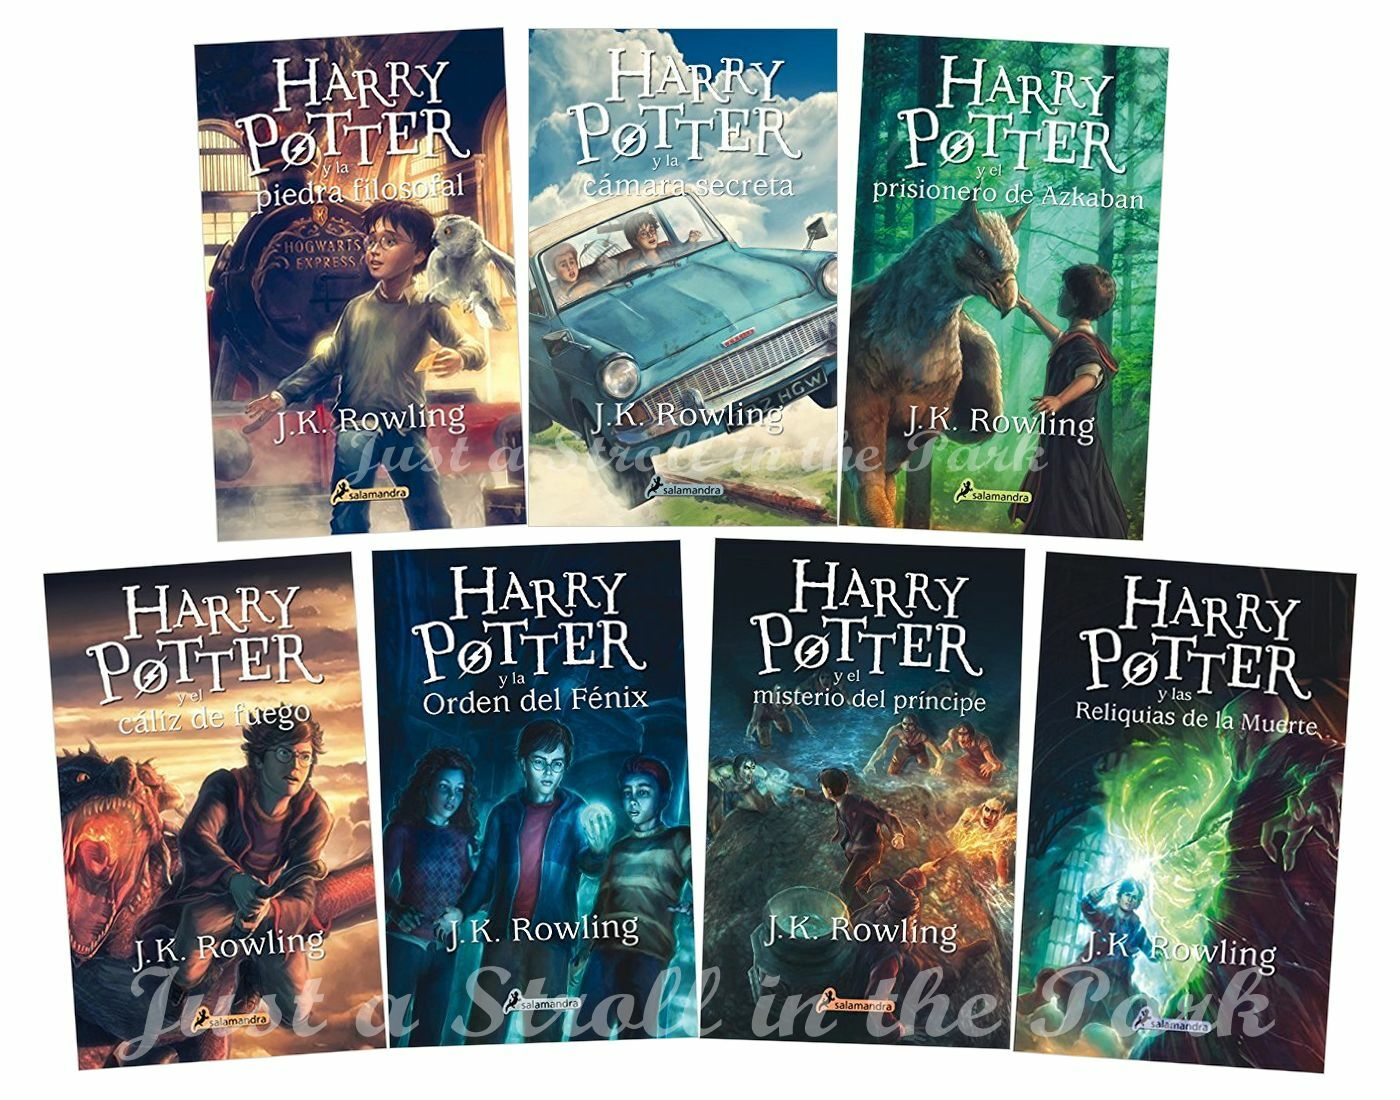 Harry Potter Libro 1 Harry Potter Complete Collection Spanish Edition Books 1